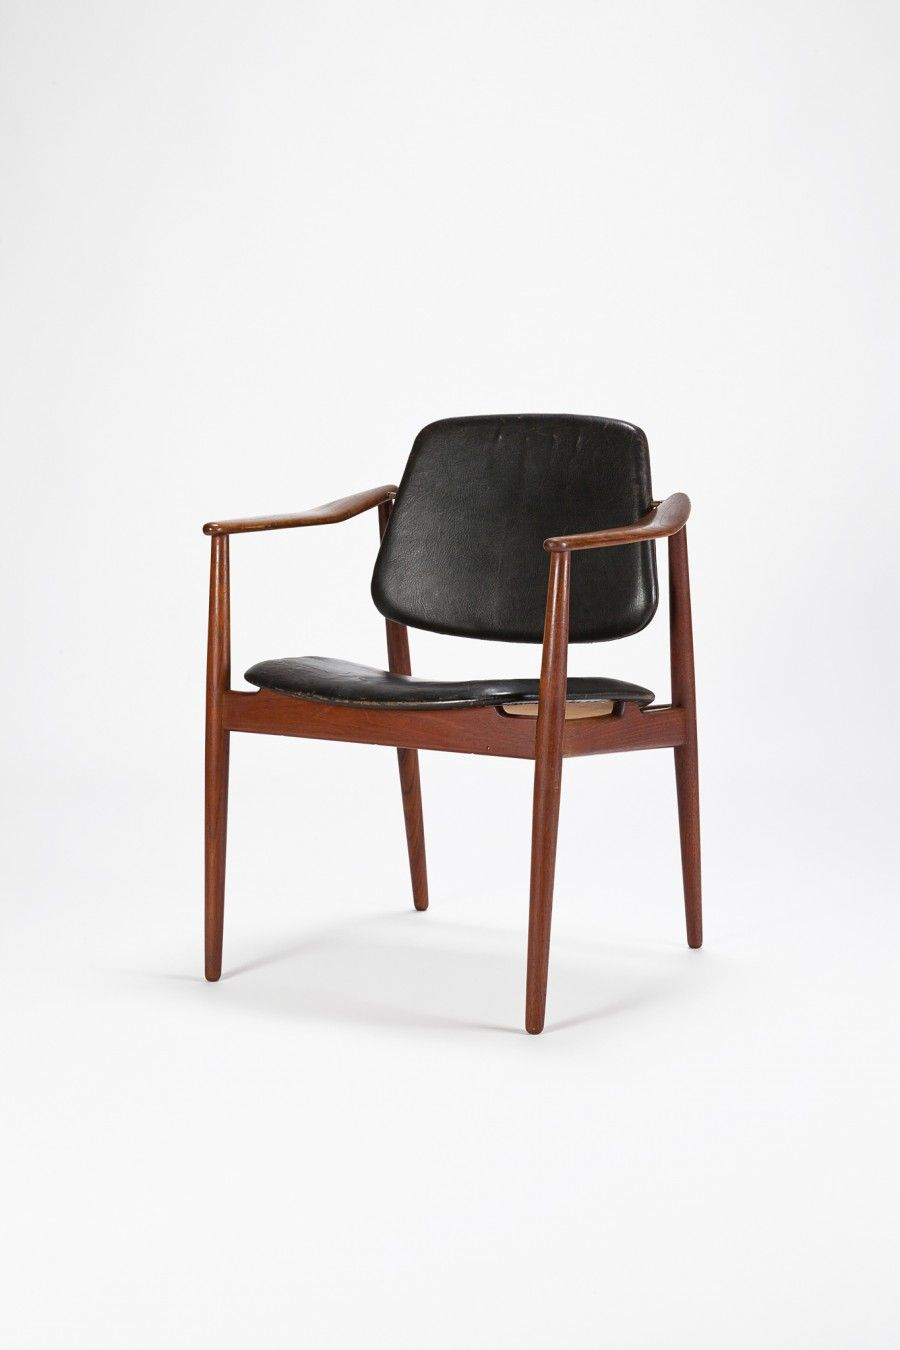 Arne Vodder Sessel Arne Vodder Teak And Leather Armchair For Bovirke C1950